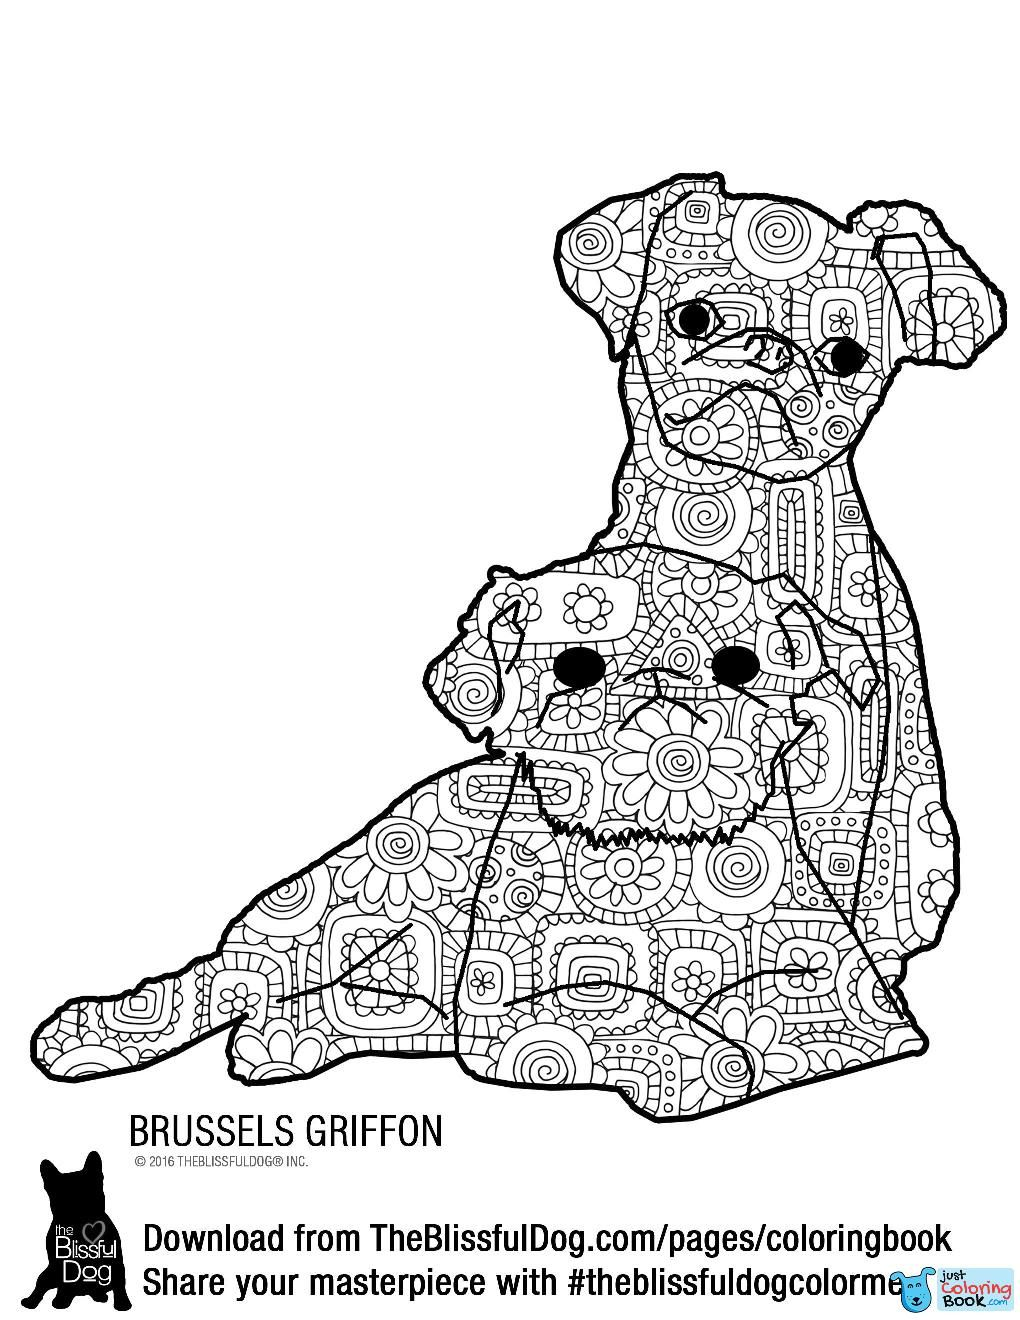 Coloring Book Dog Coloring Book Pages Download Free Dog Coloring For Brussels Griffon Coloring Pages Bilder